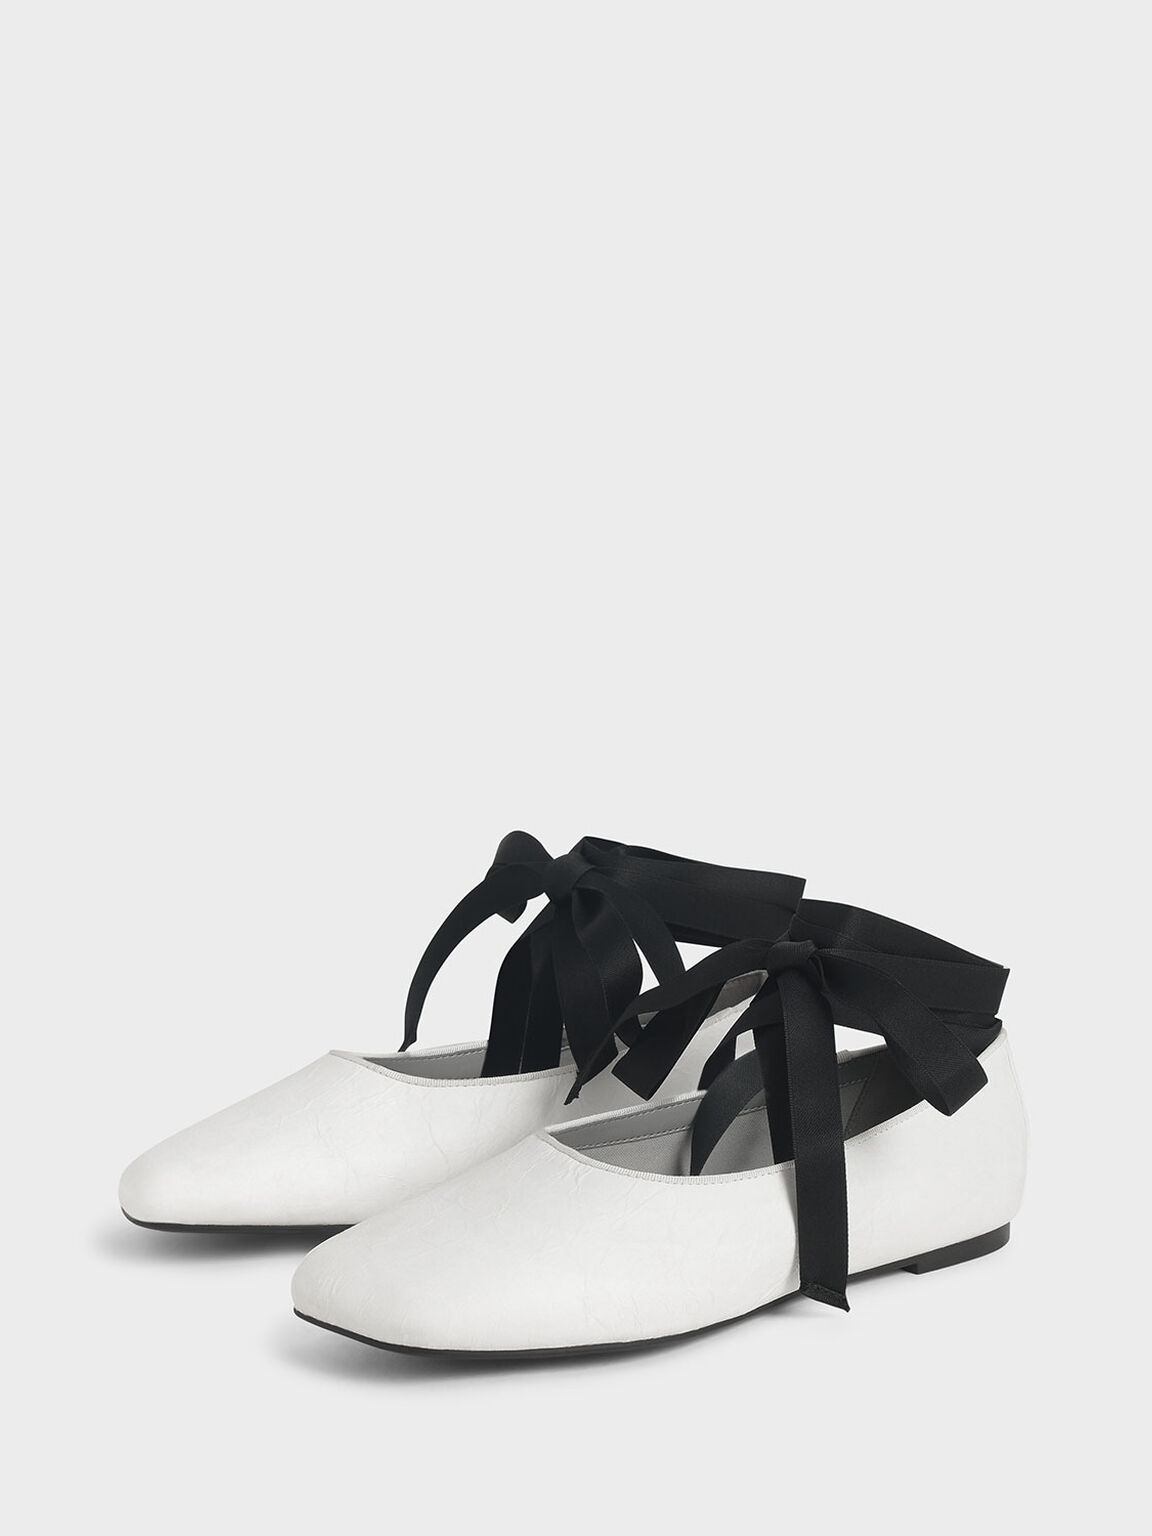 Ankle Tie Ballerina Flats, White, hi-res